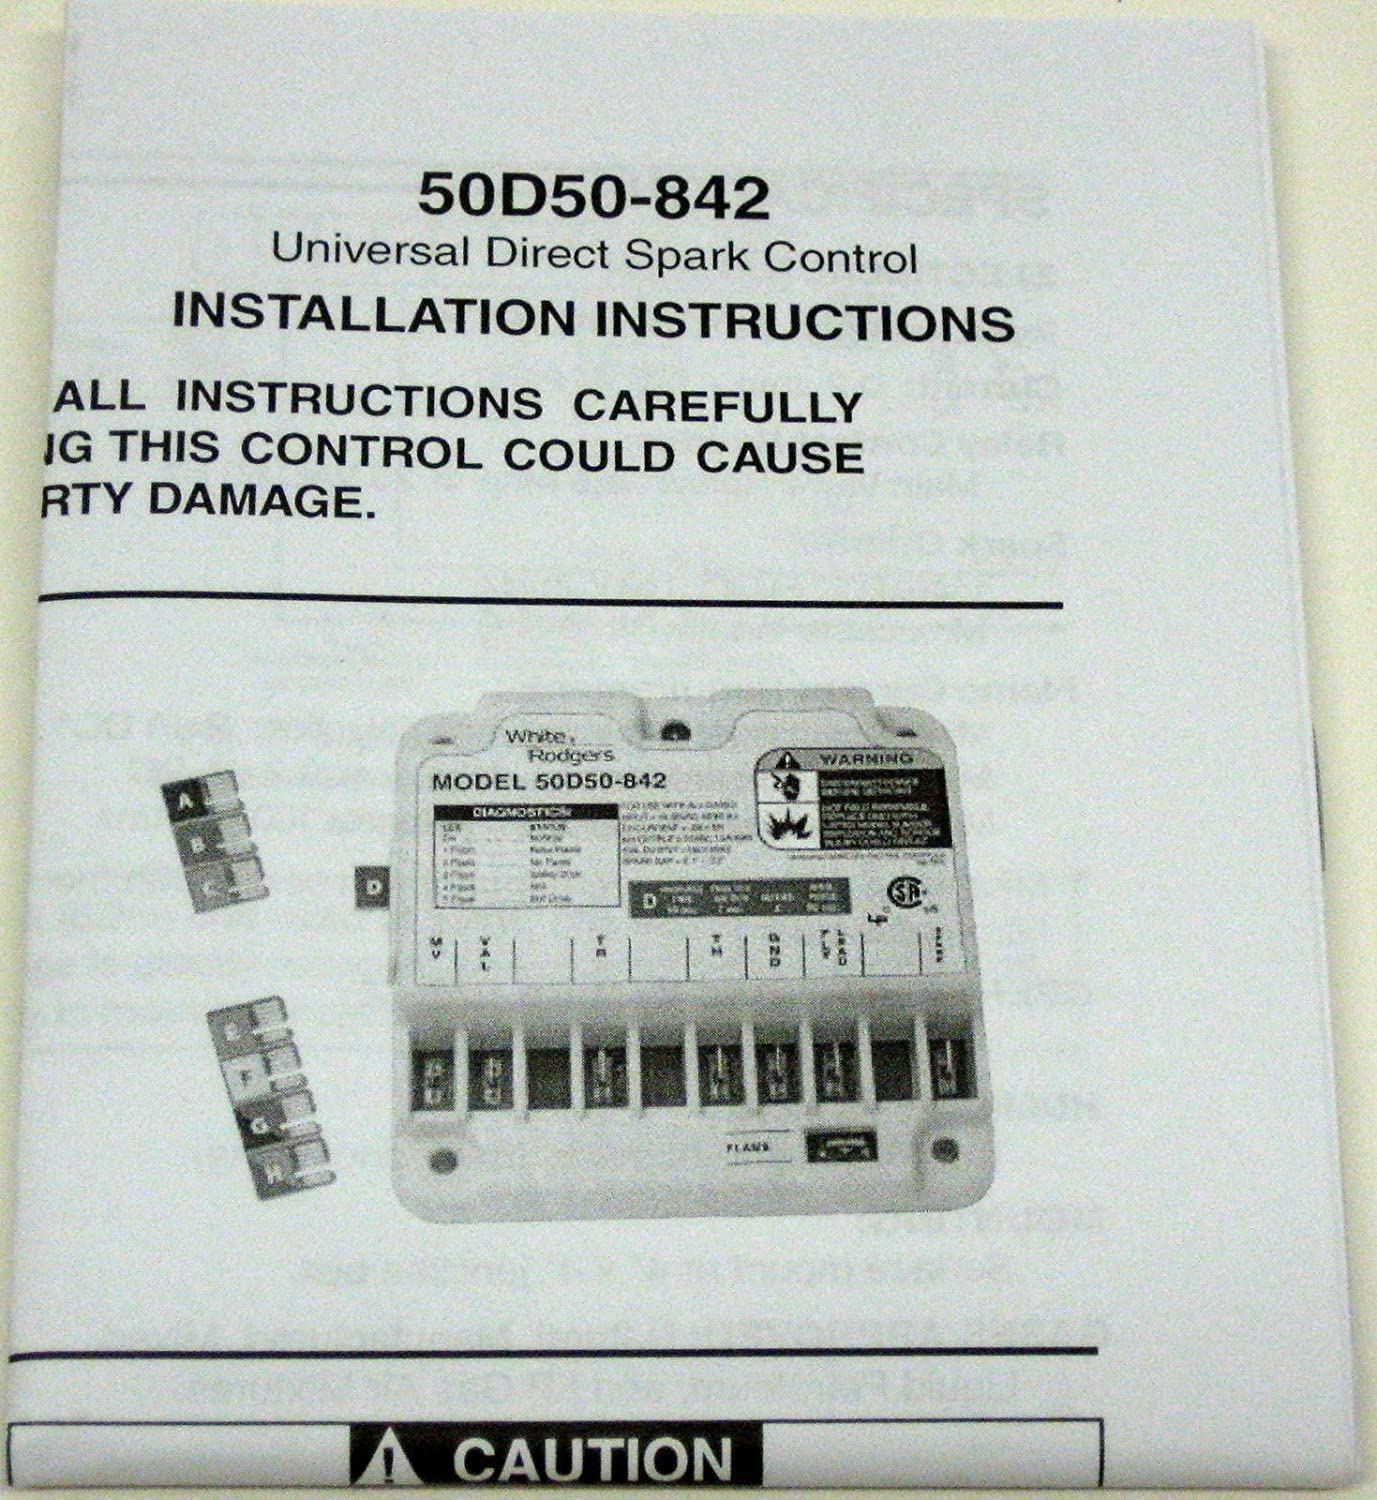 White-Rodgers 50D50-842 White Rodgers Universal Direct Spark Ignition Control